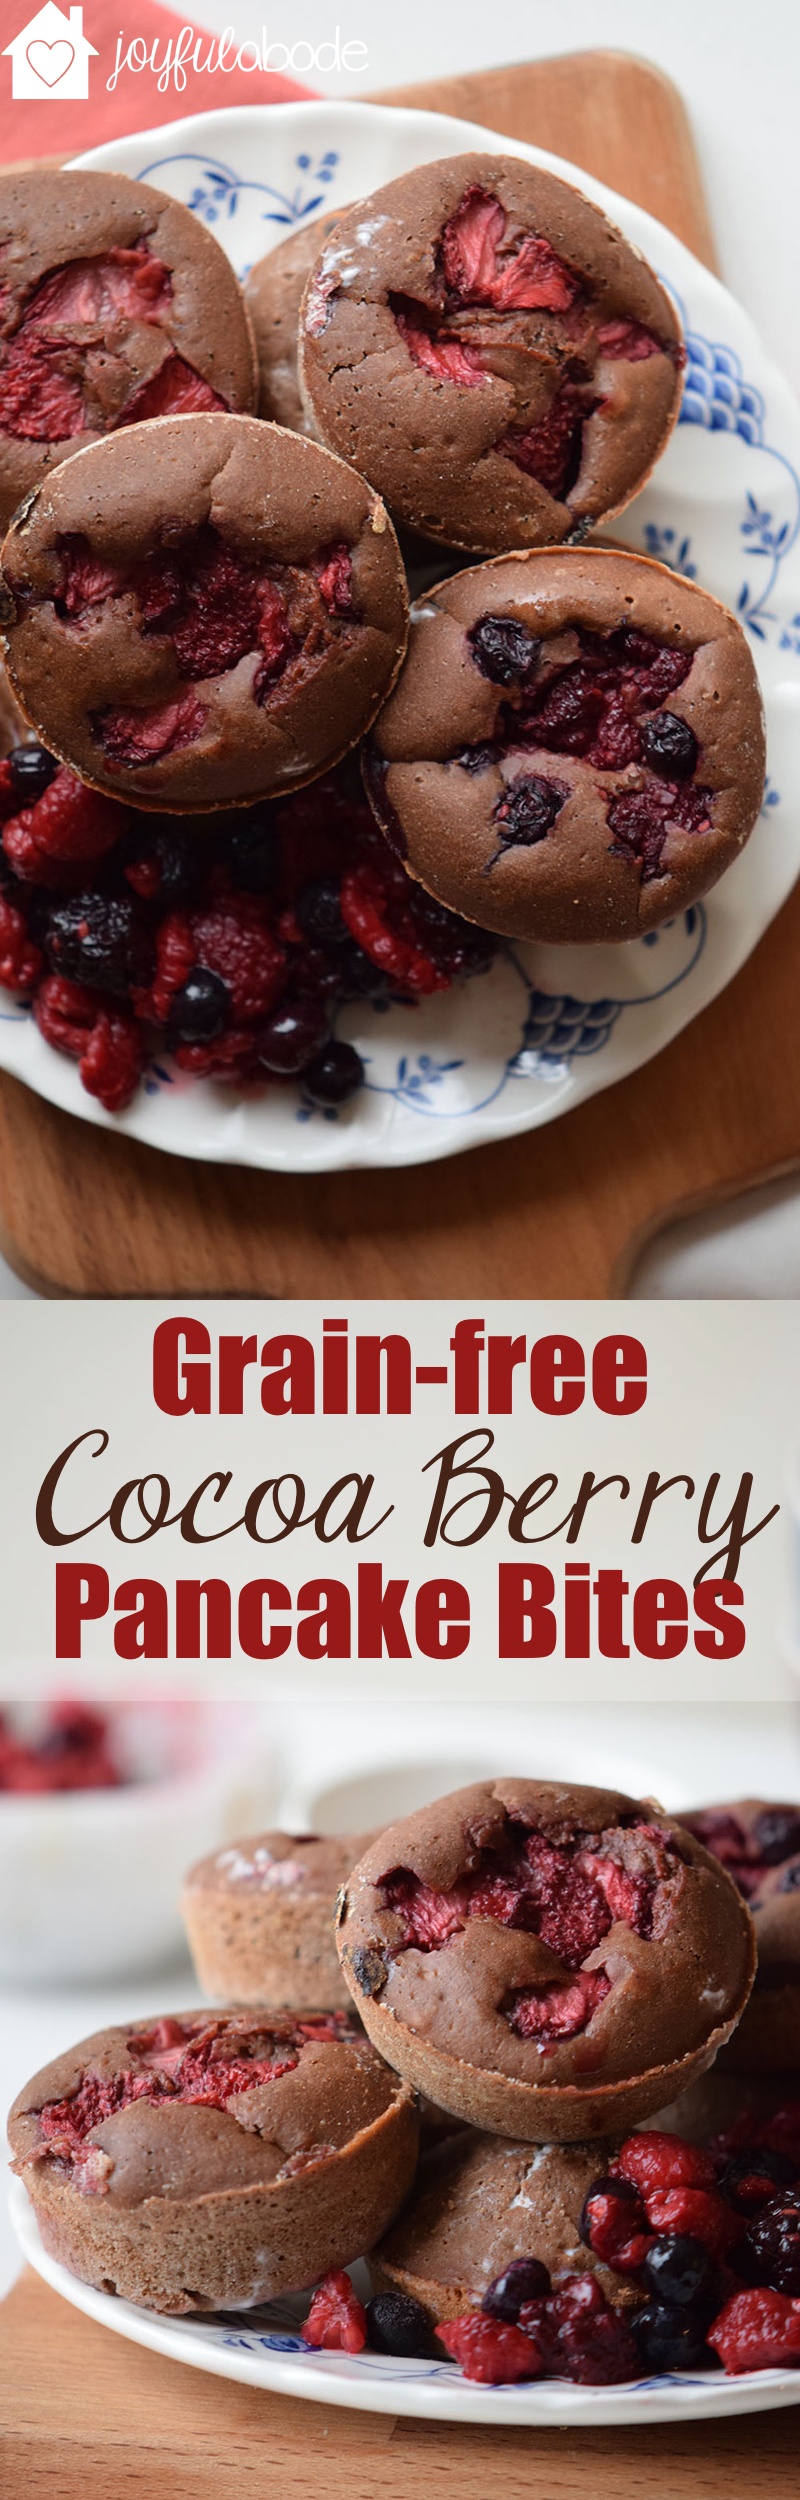 These grain-free dairy-free chocolate almond berry pancake bites are amazing. Little paleo muffins of delight! Make this recipe for breakfast or brunch and you won't be disappointed.